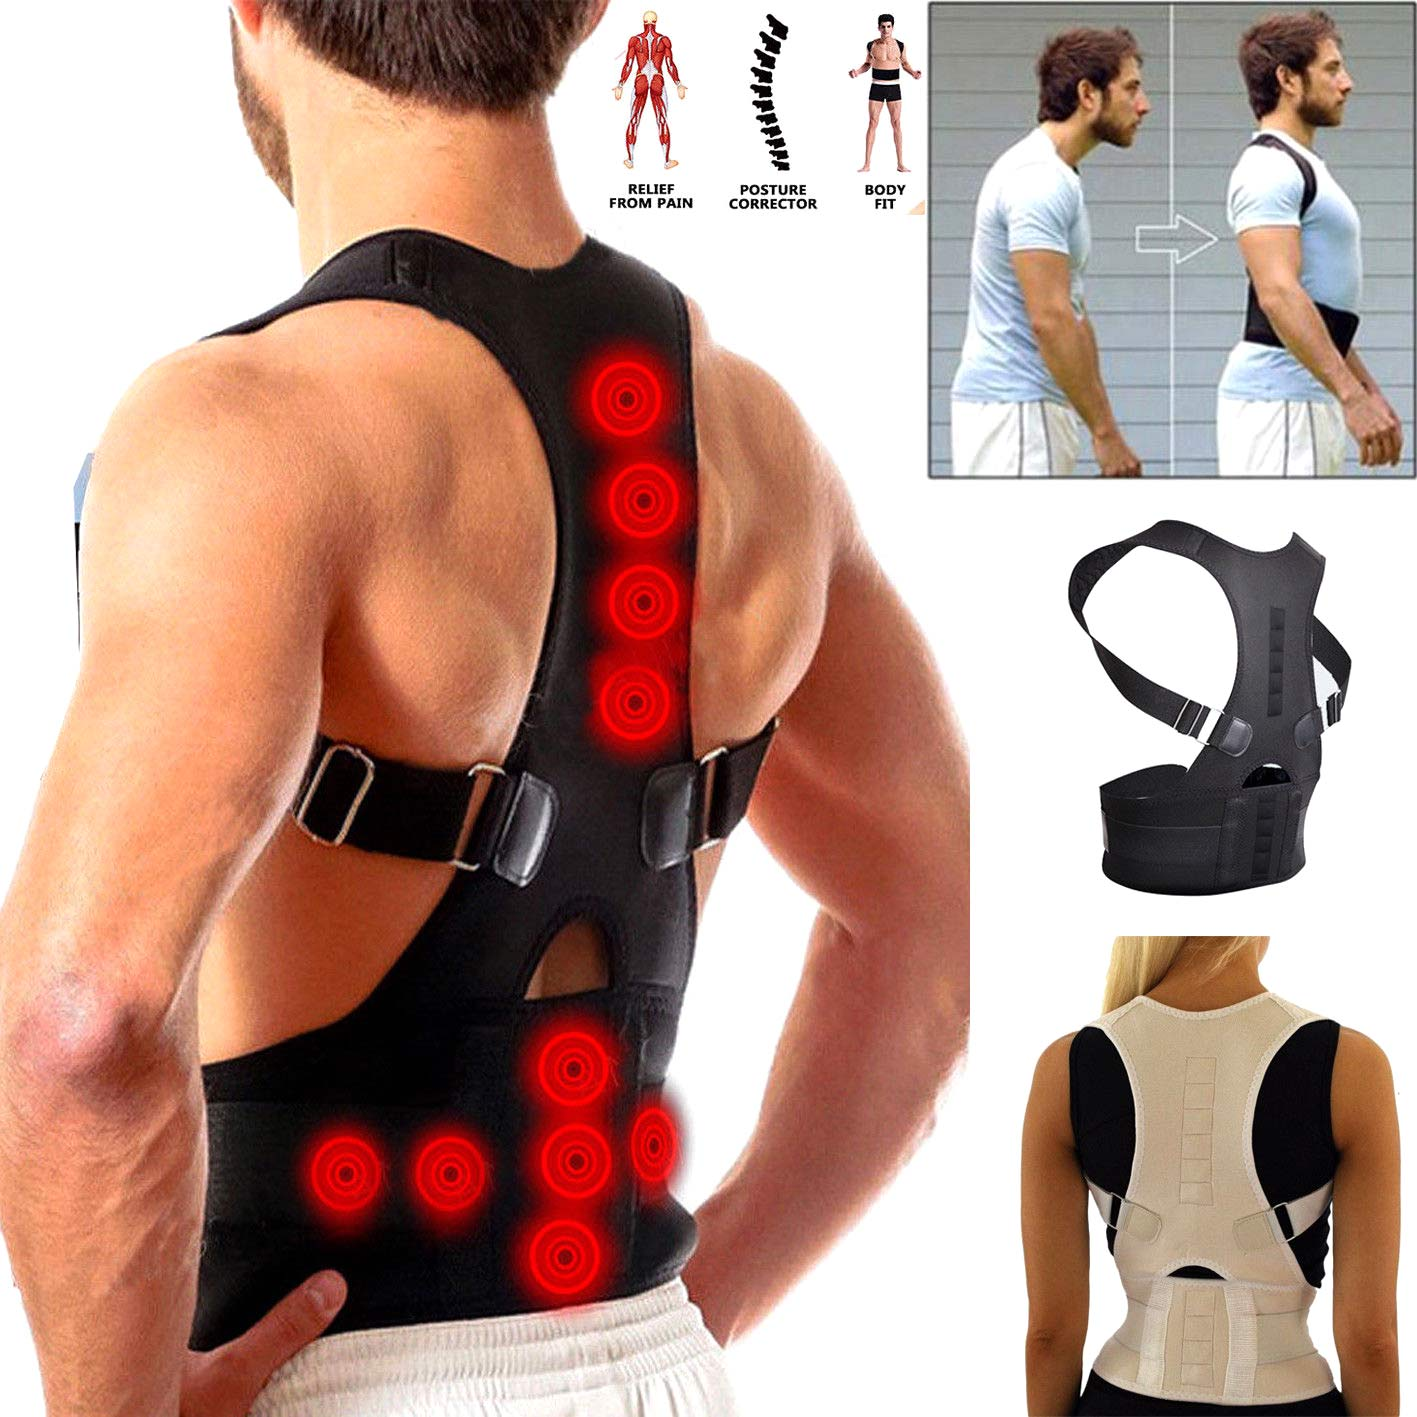 Male Female Adjustable Magnetic Posture Corrector Corset Back Brace Back Belt Lumbar Support Straight Corrector (free gift)